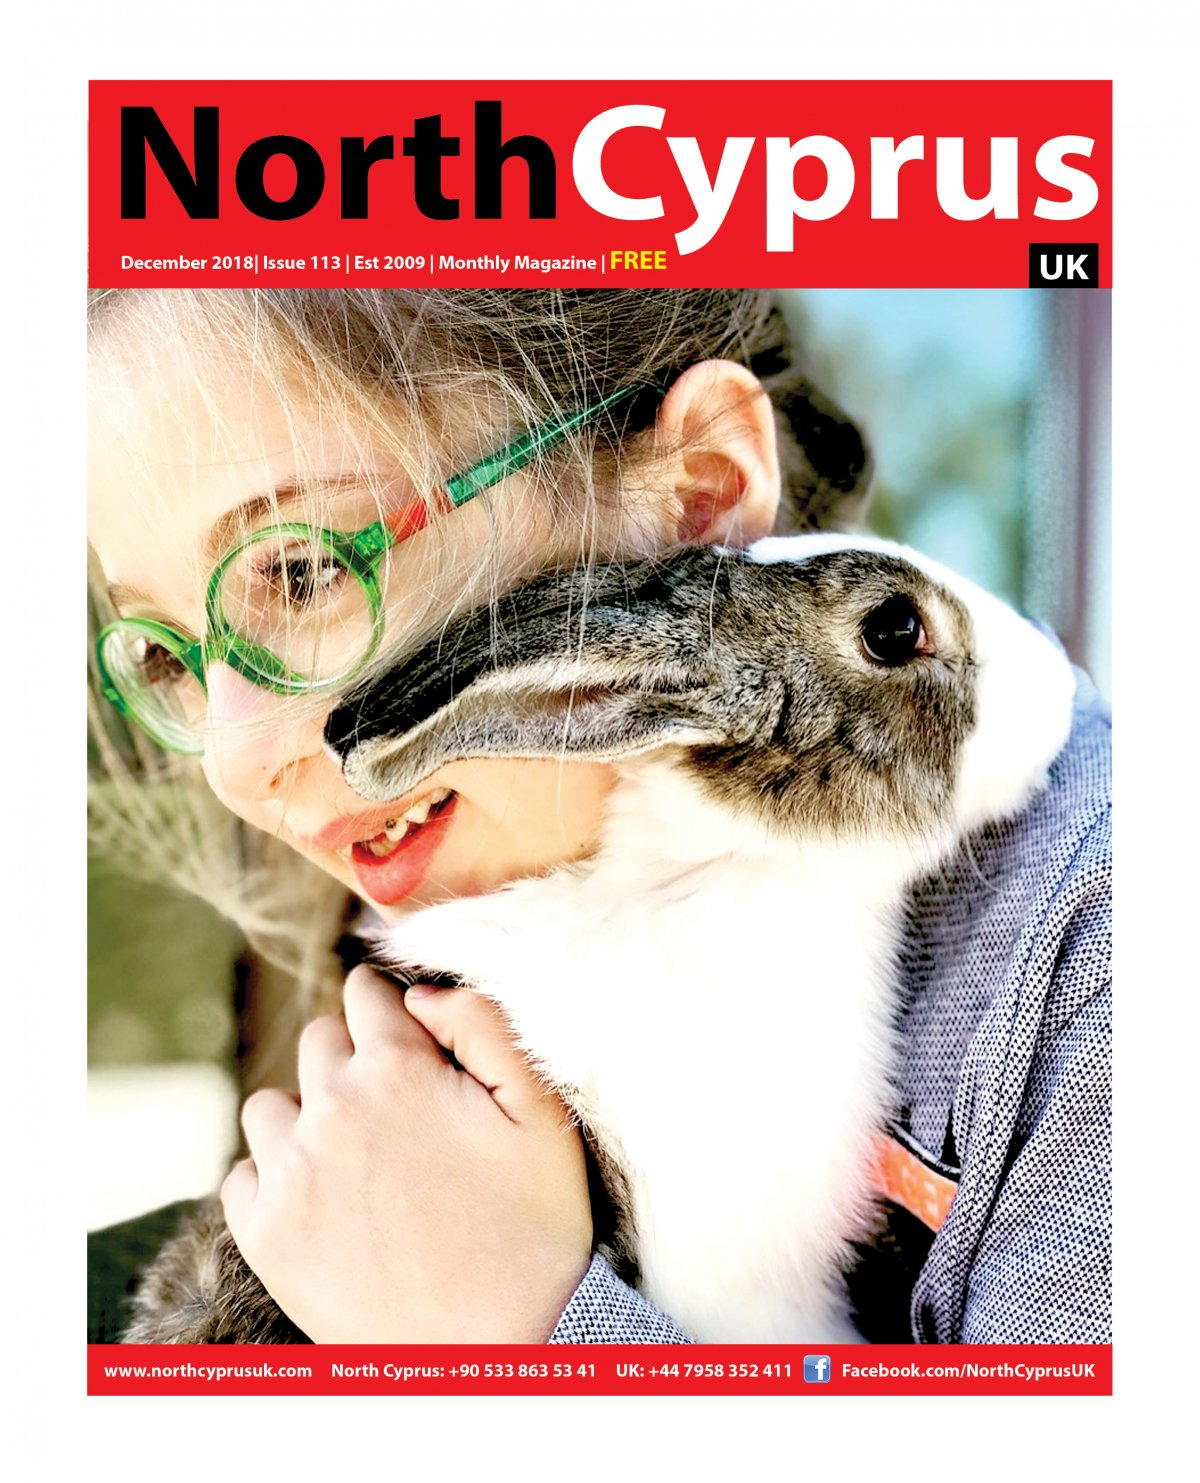 North Cyprus UK - DECEMBER ISSUE